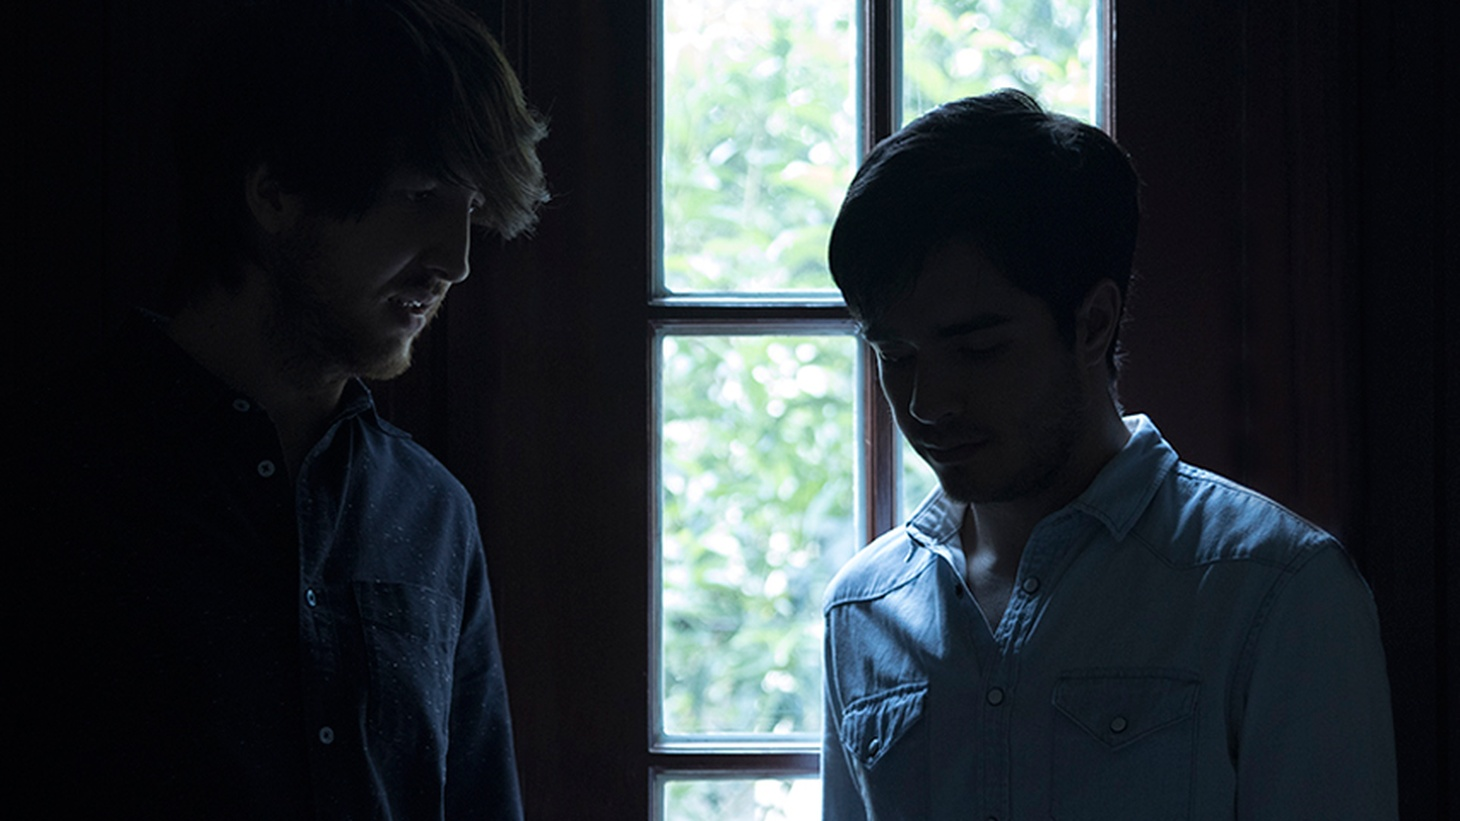 Mexico City-based Mylko are two multi-instrumentalist producers in their mid/late 20's. Influenced by artists such as James Blake and Flying Lotus, they have a debut due in Fall.